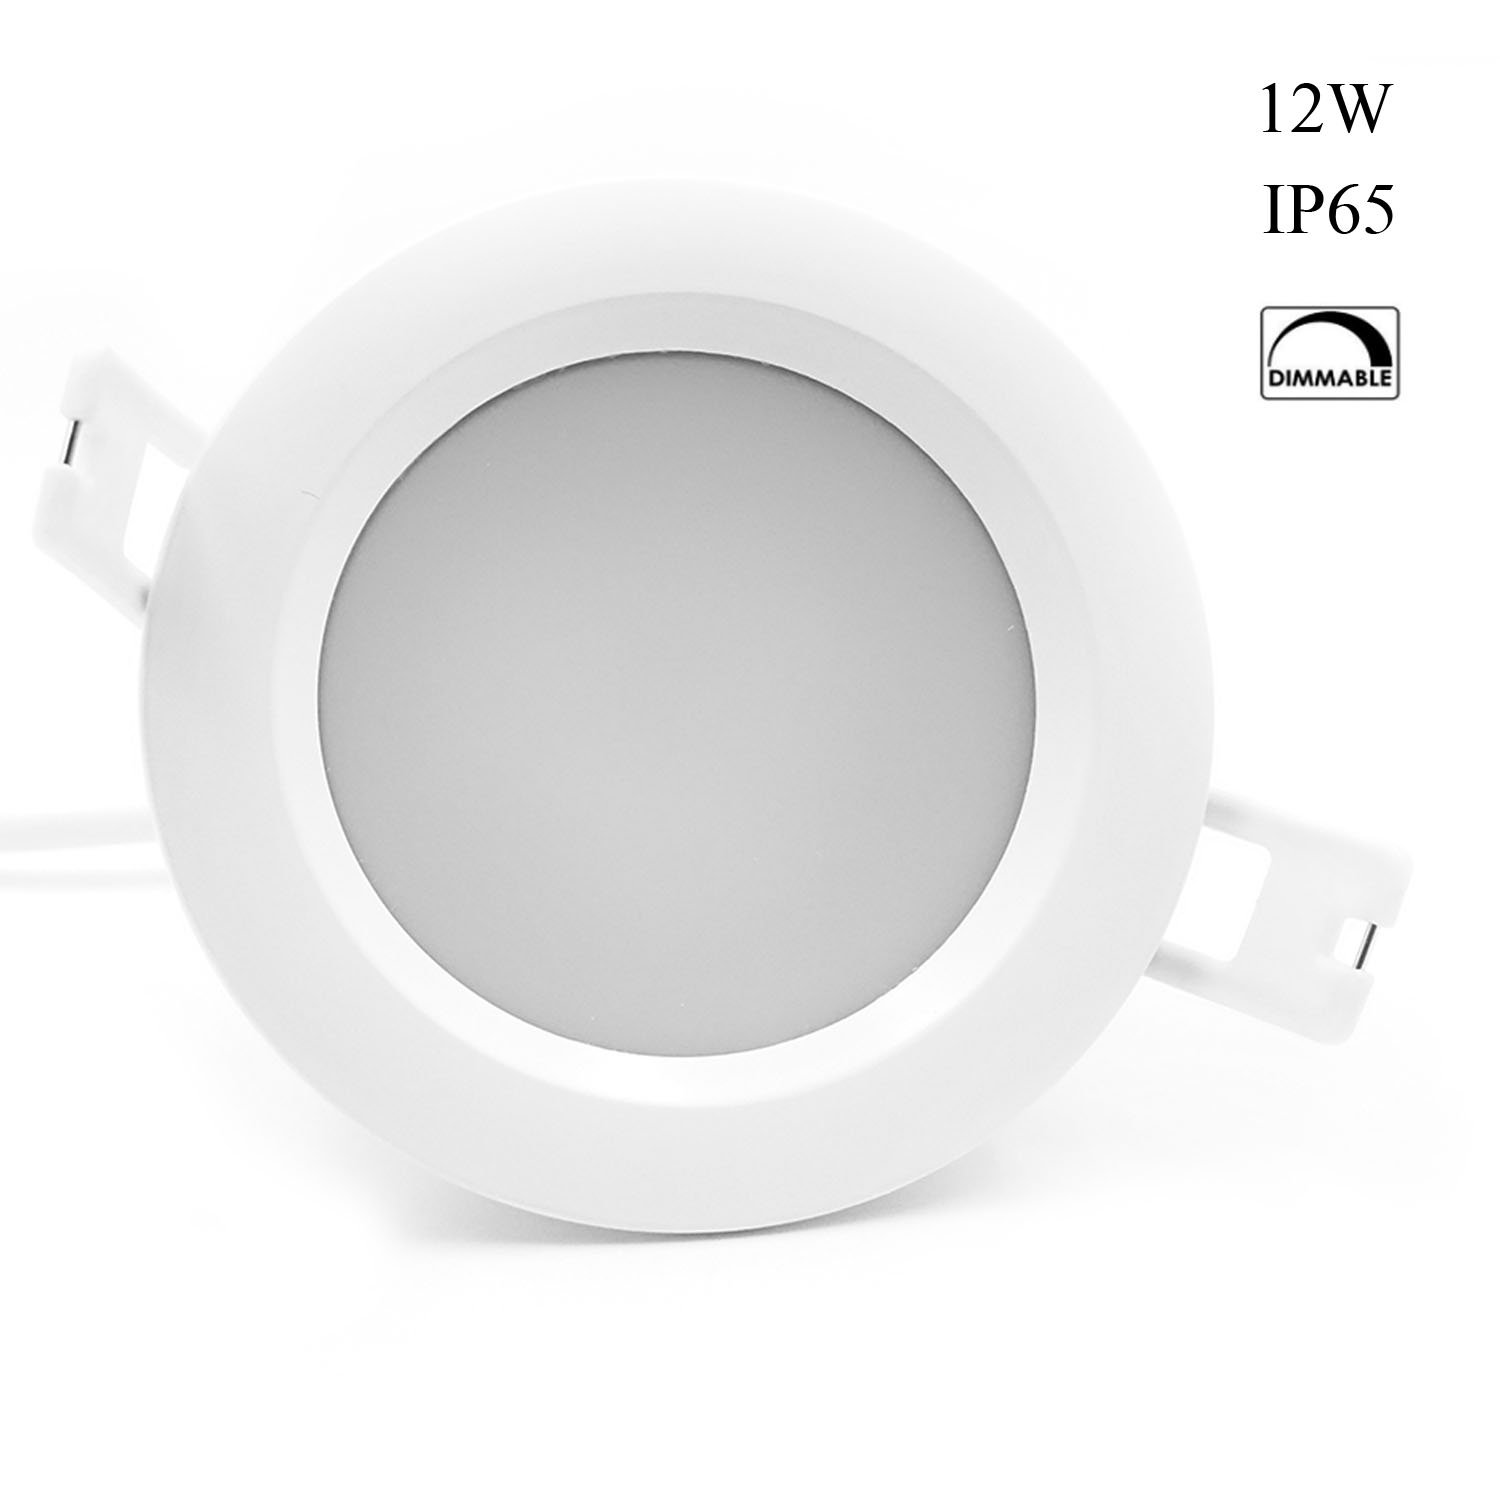 Snople Waterproof LED Ceiling Light IP65 Dimmable LED Downlight 4500K Natural White,12W,92mm Cutout,LED Recessed light for Bathroom